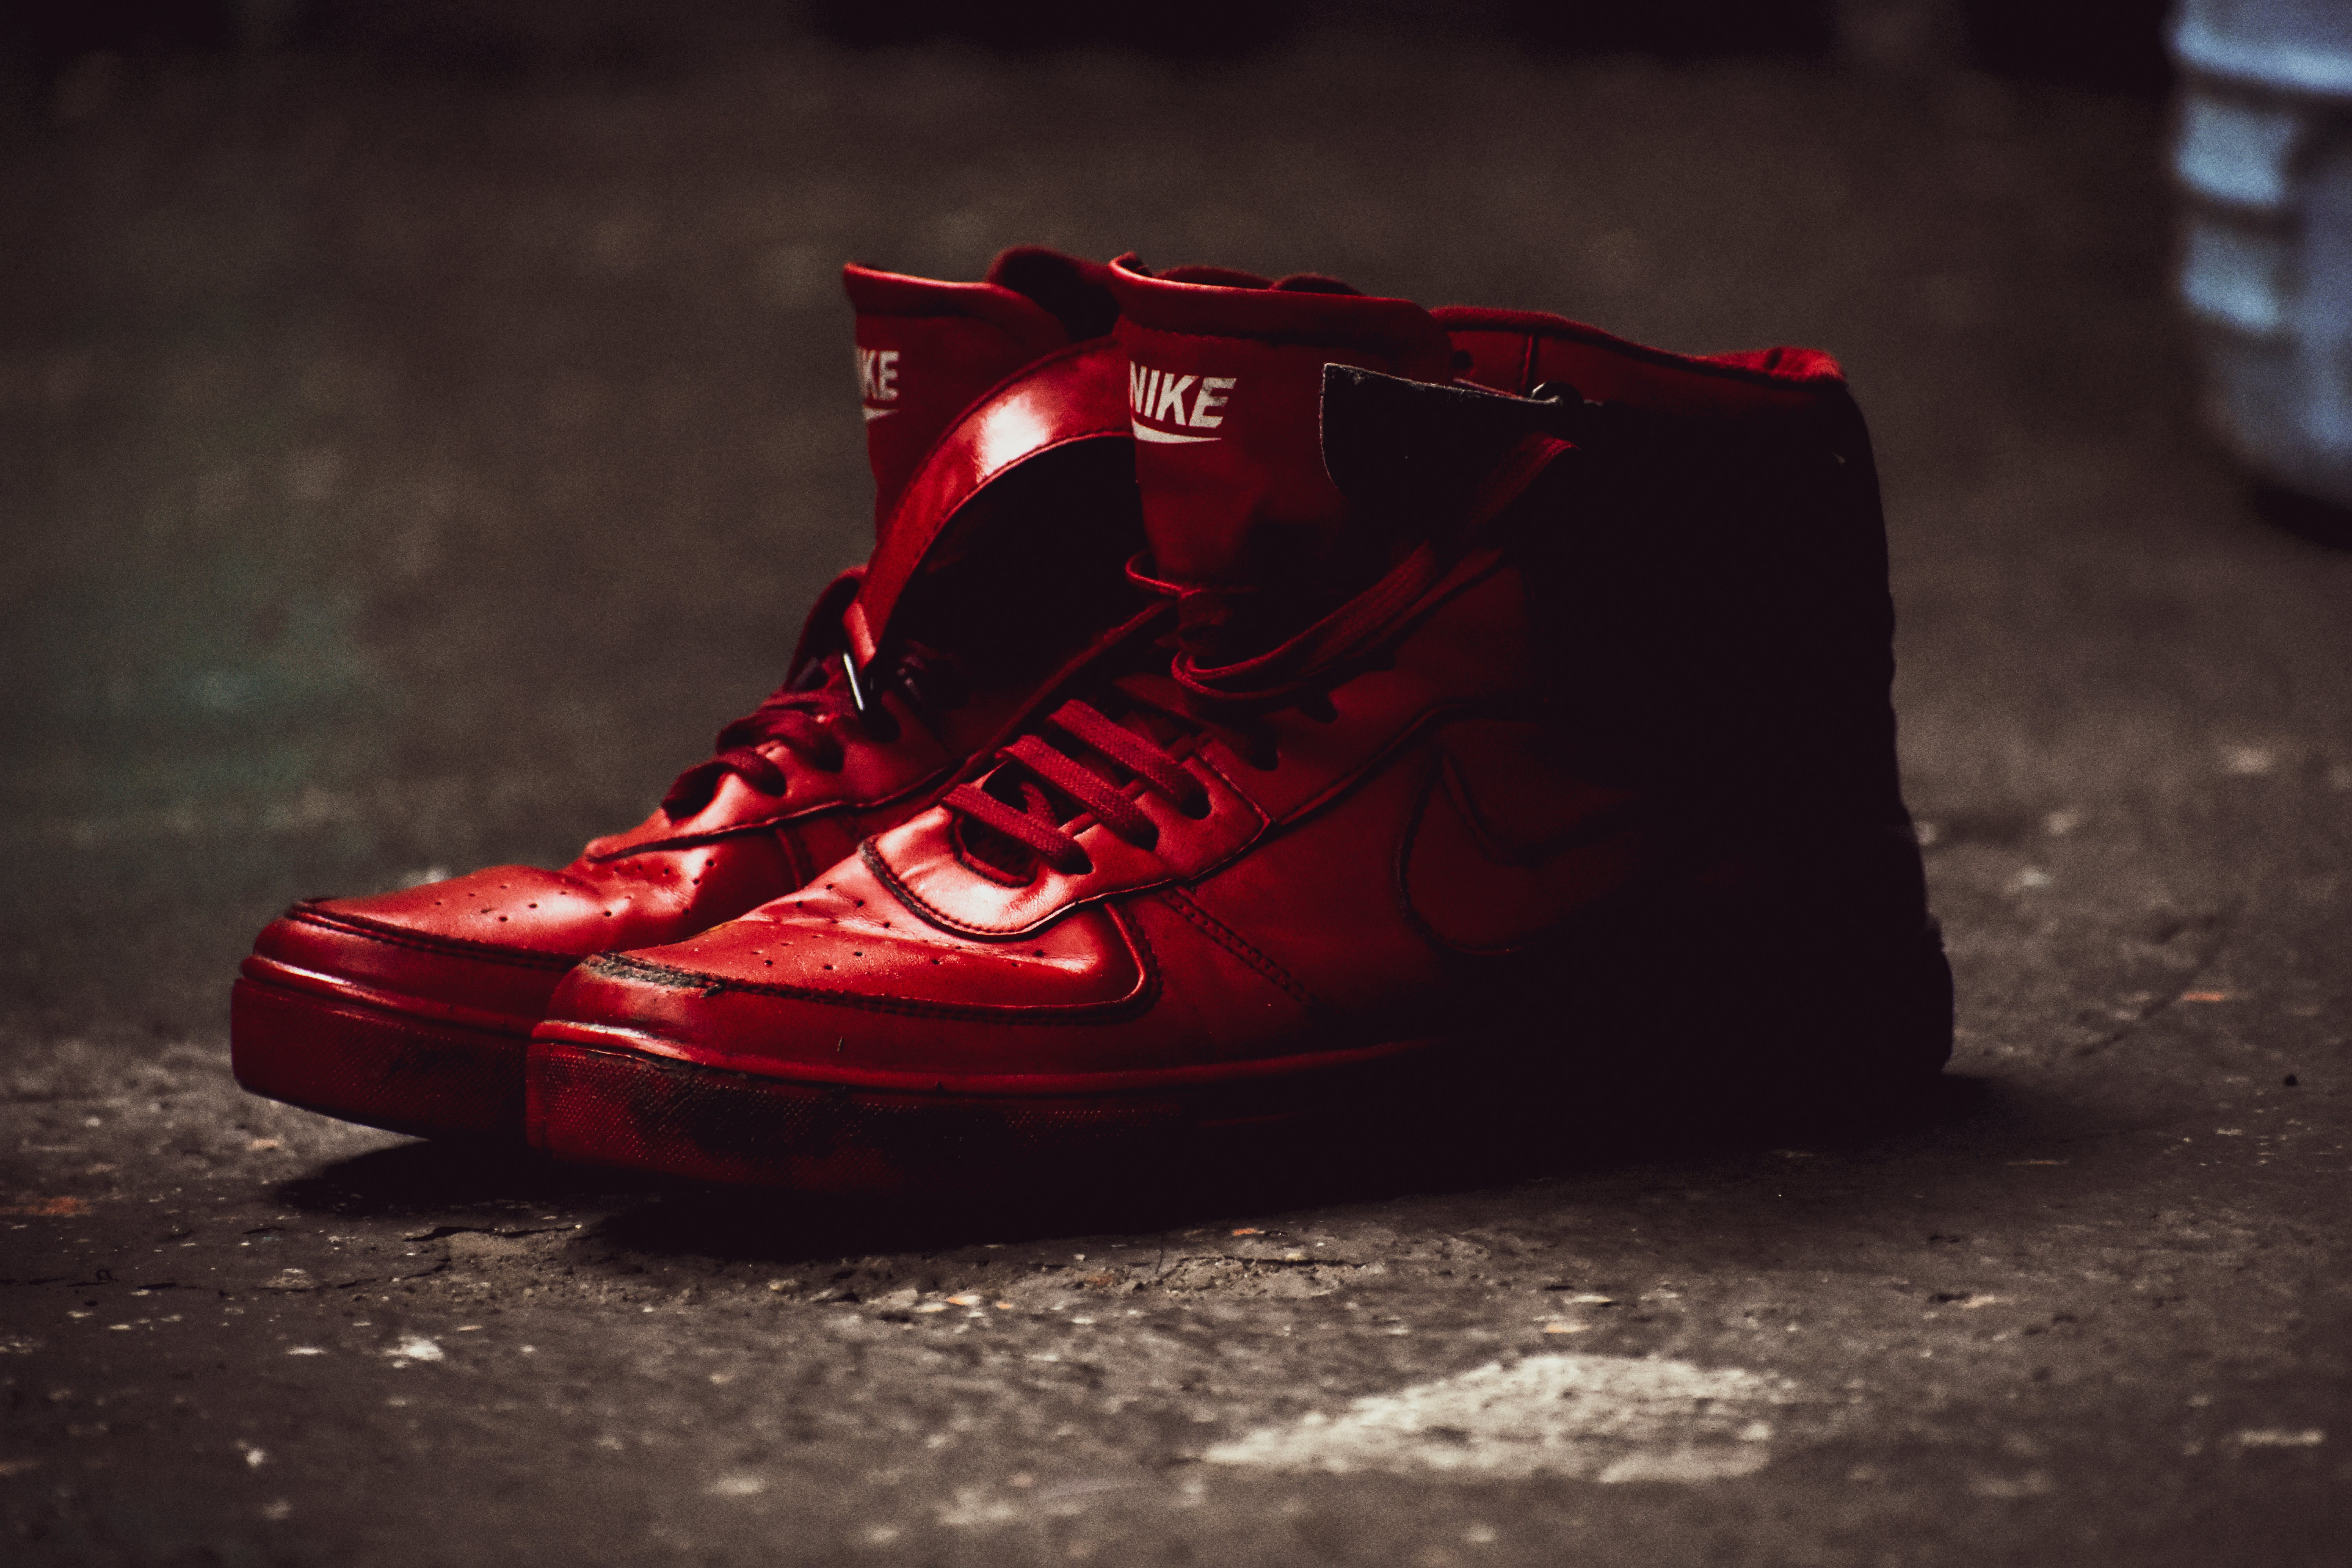 Close Up Photography of Red Nike Basketball Shoes